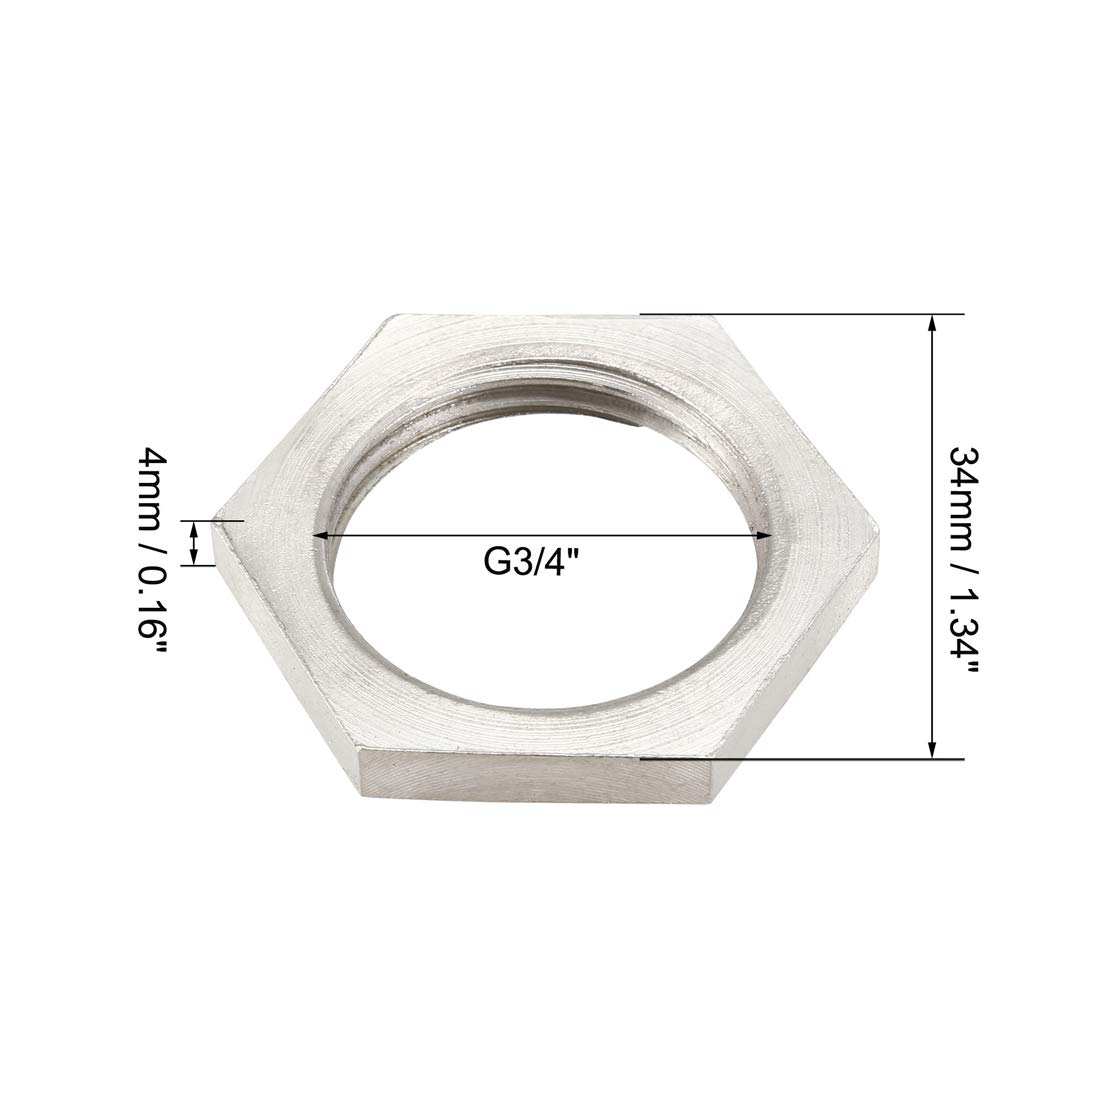 uxcell Pipe Fitting Hex Locknut SUS304 Stainless Steel G3//4 Inch Female Threaded